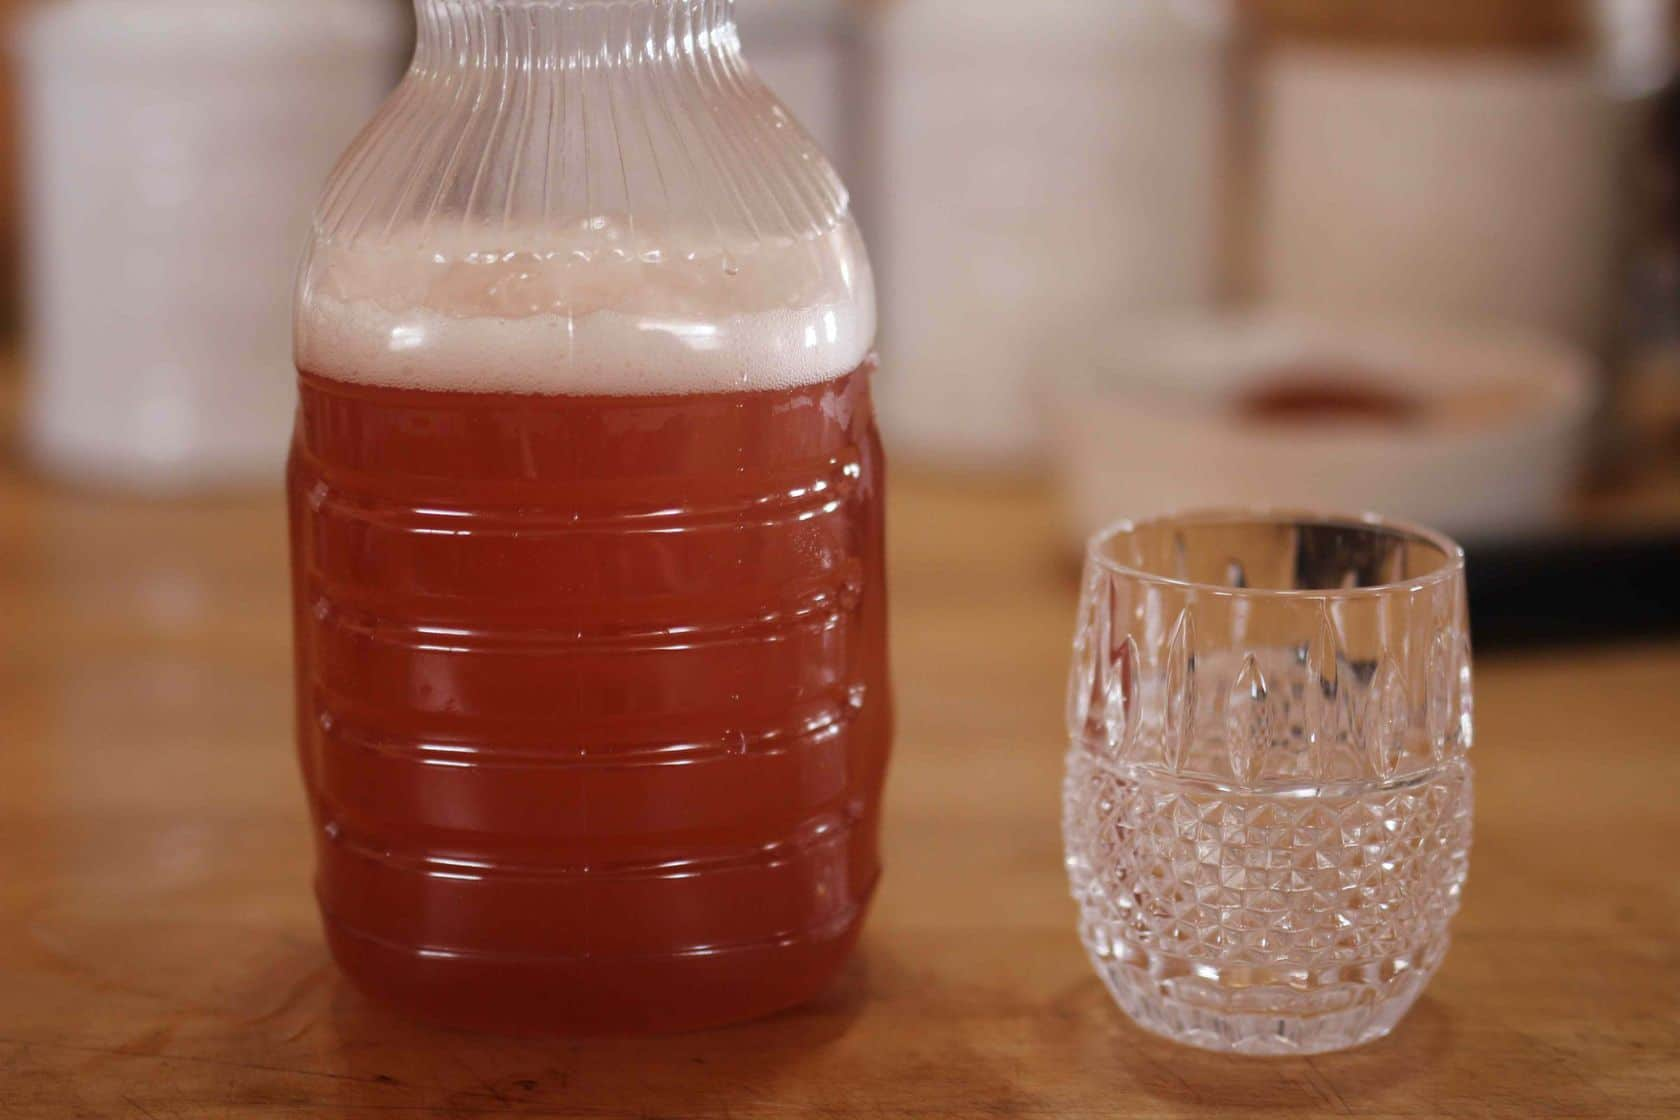 How To Make Lacto-Fermented Soda Using Whey